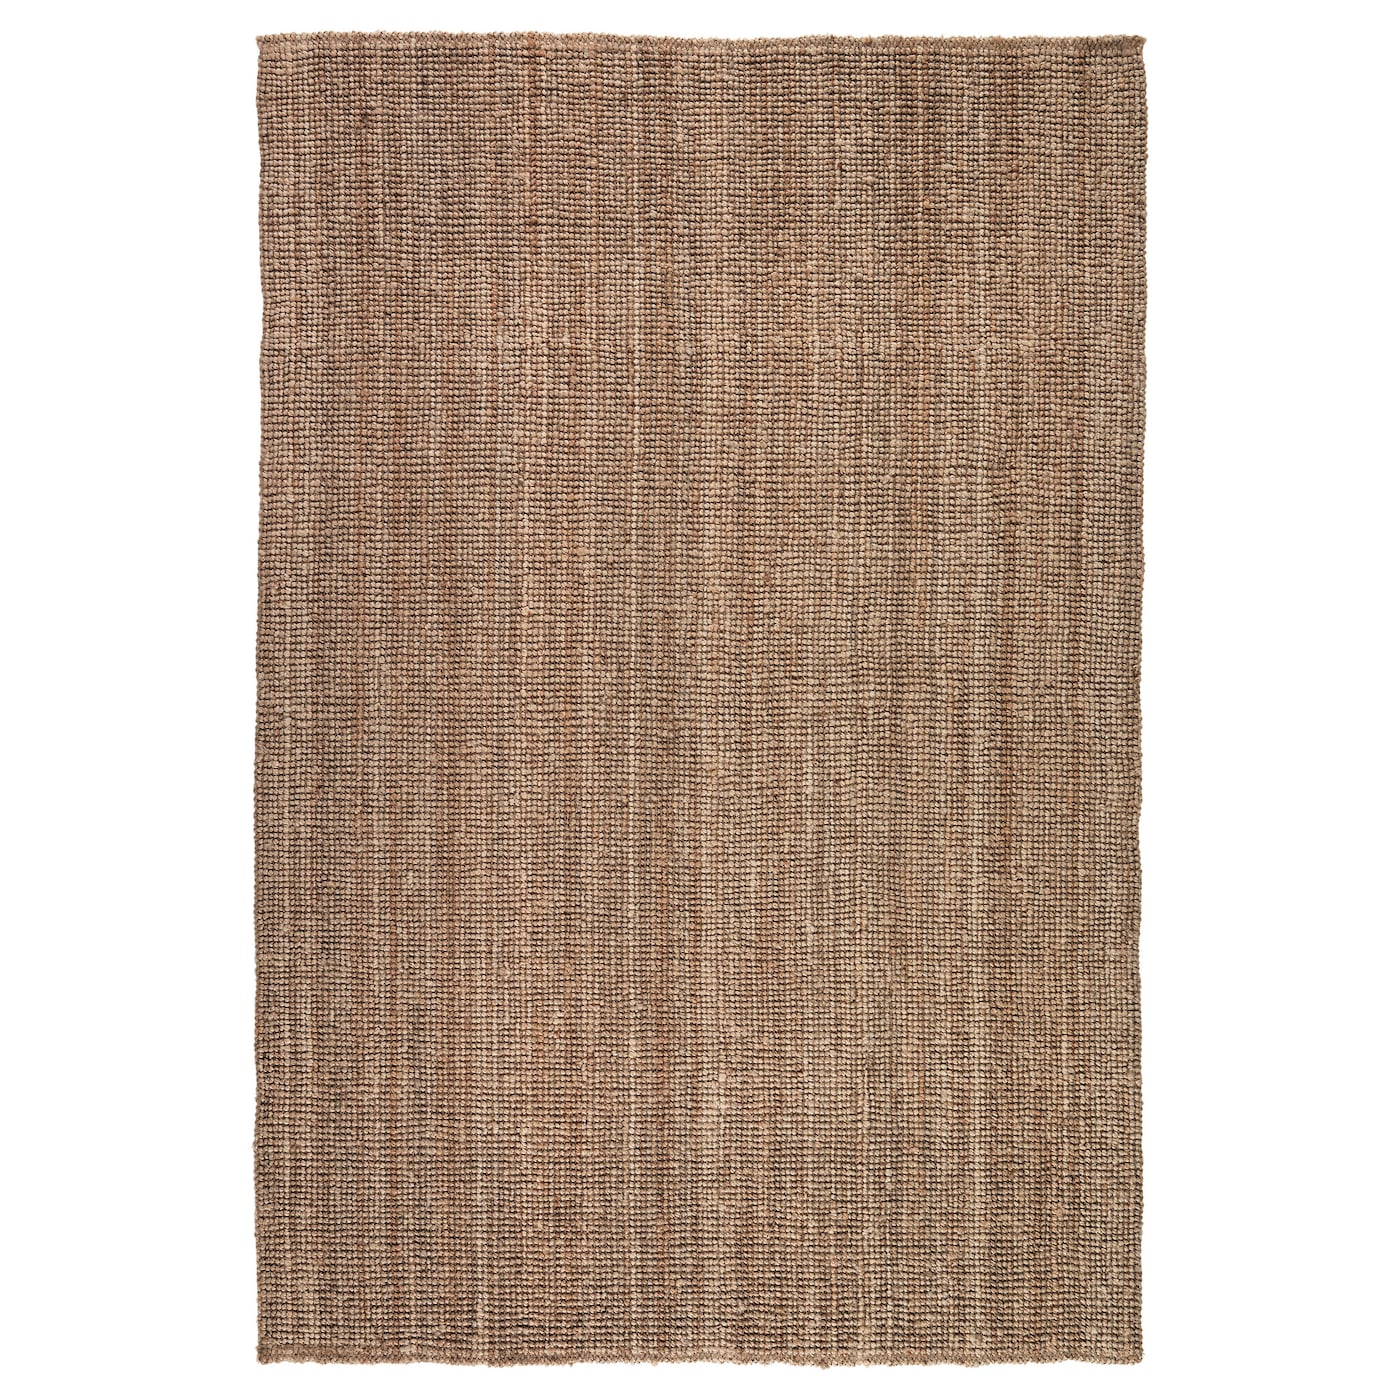 Lohals Rug Flatwoven Natural 5 3